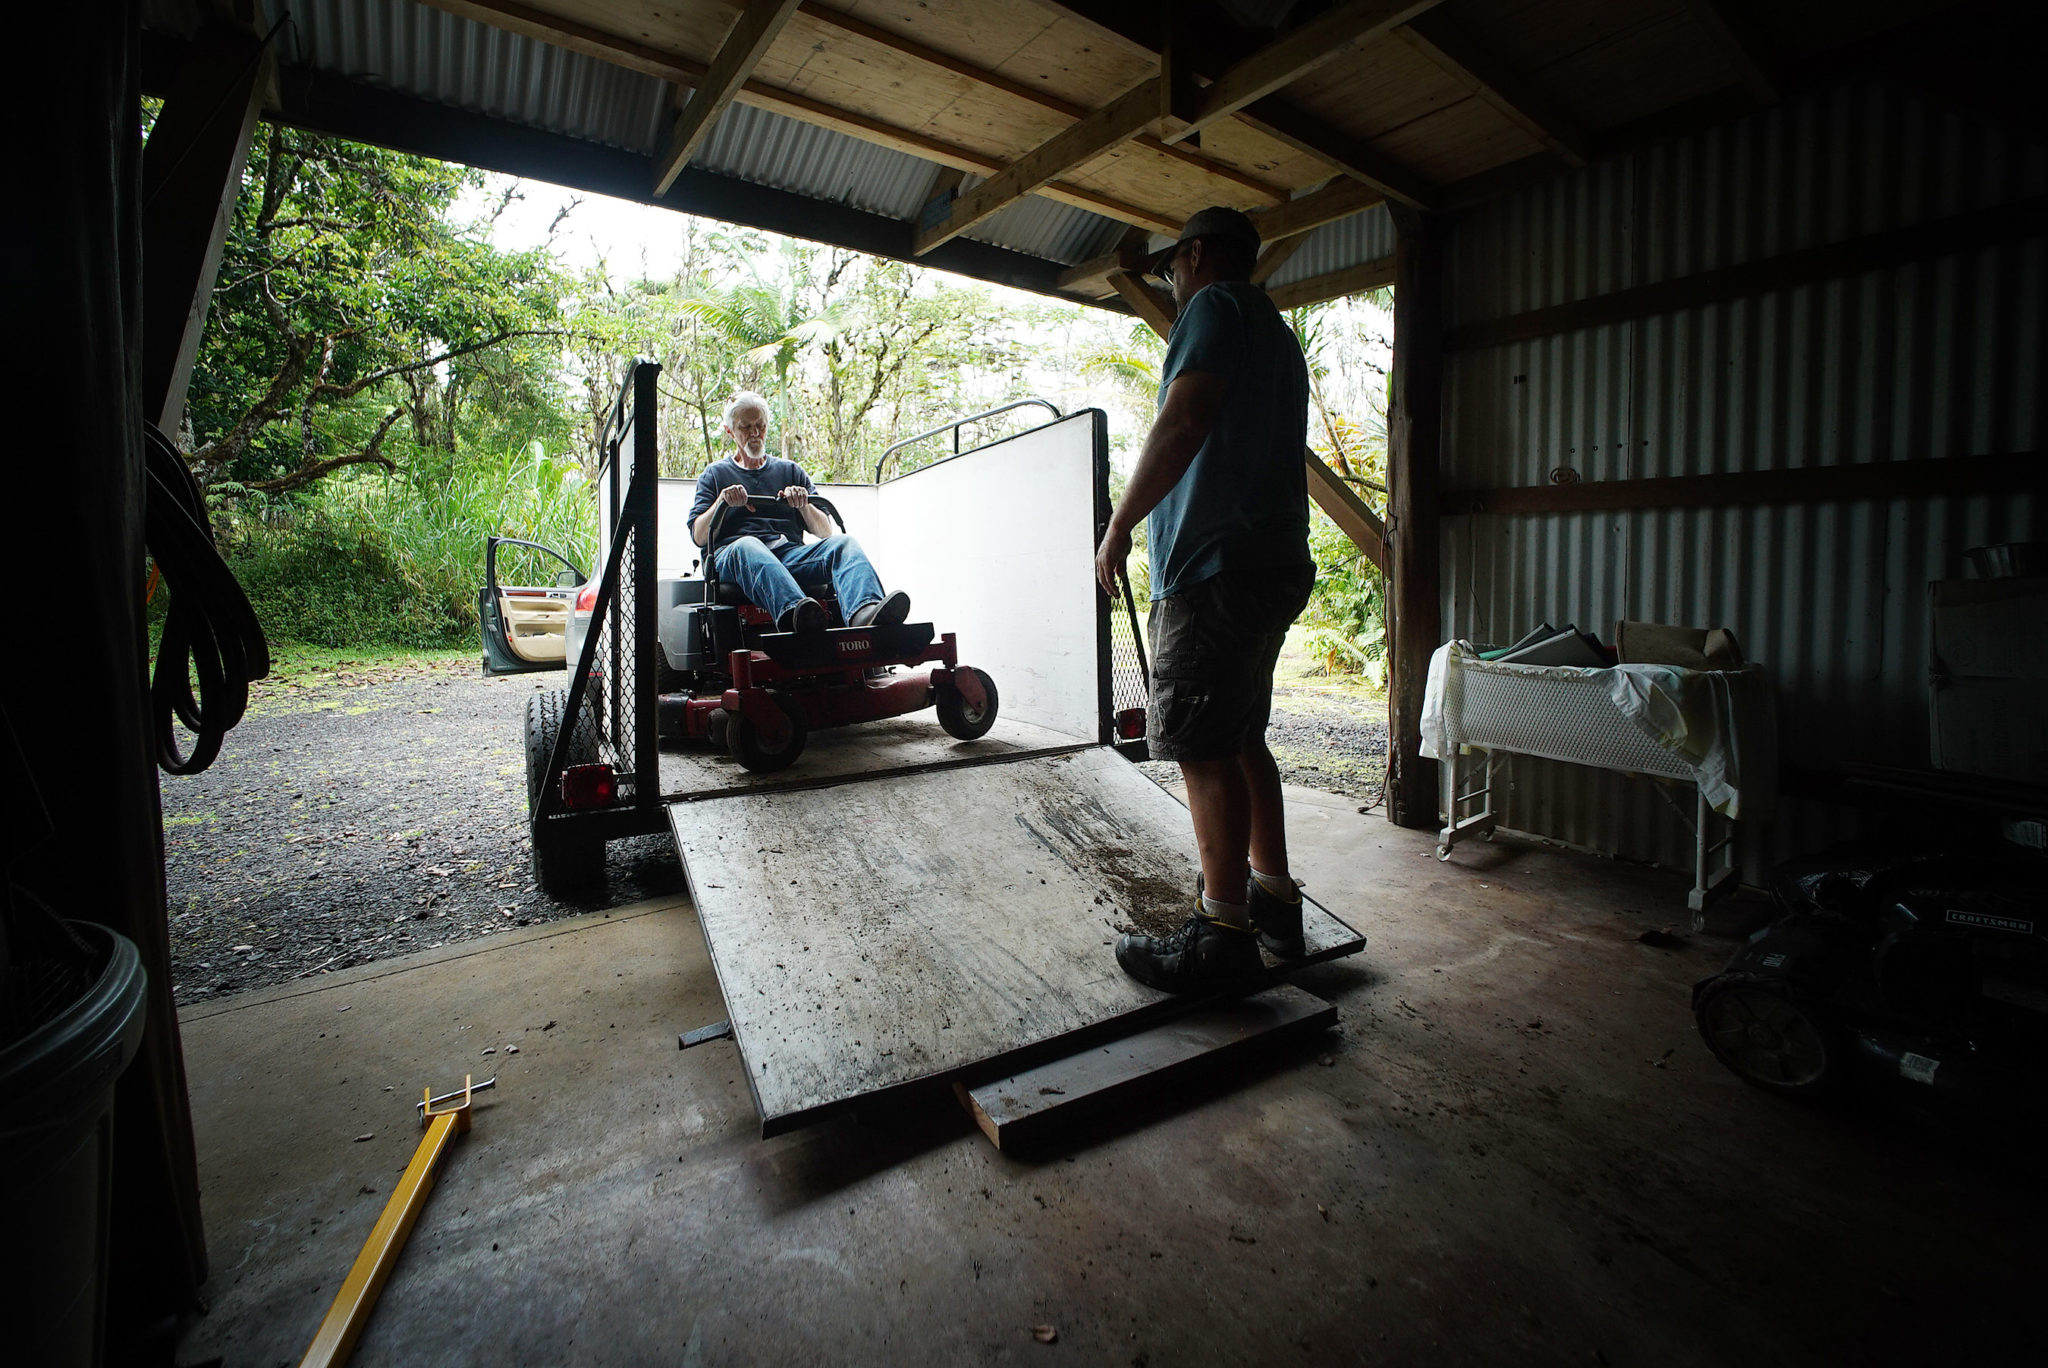 <p>Mick Kalber, a professional photographer and filmmaker who specializes in shooting volcanos, loads up his large mower, shredder and tools after the county allowed Leilani Estates residents to check on their homes. A short time later, the county issued an alert ordering emergency evacuation due to poisonous sulfur dioxide fumes.</p>